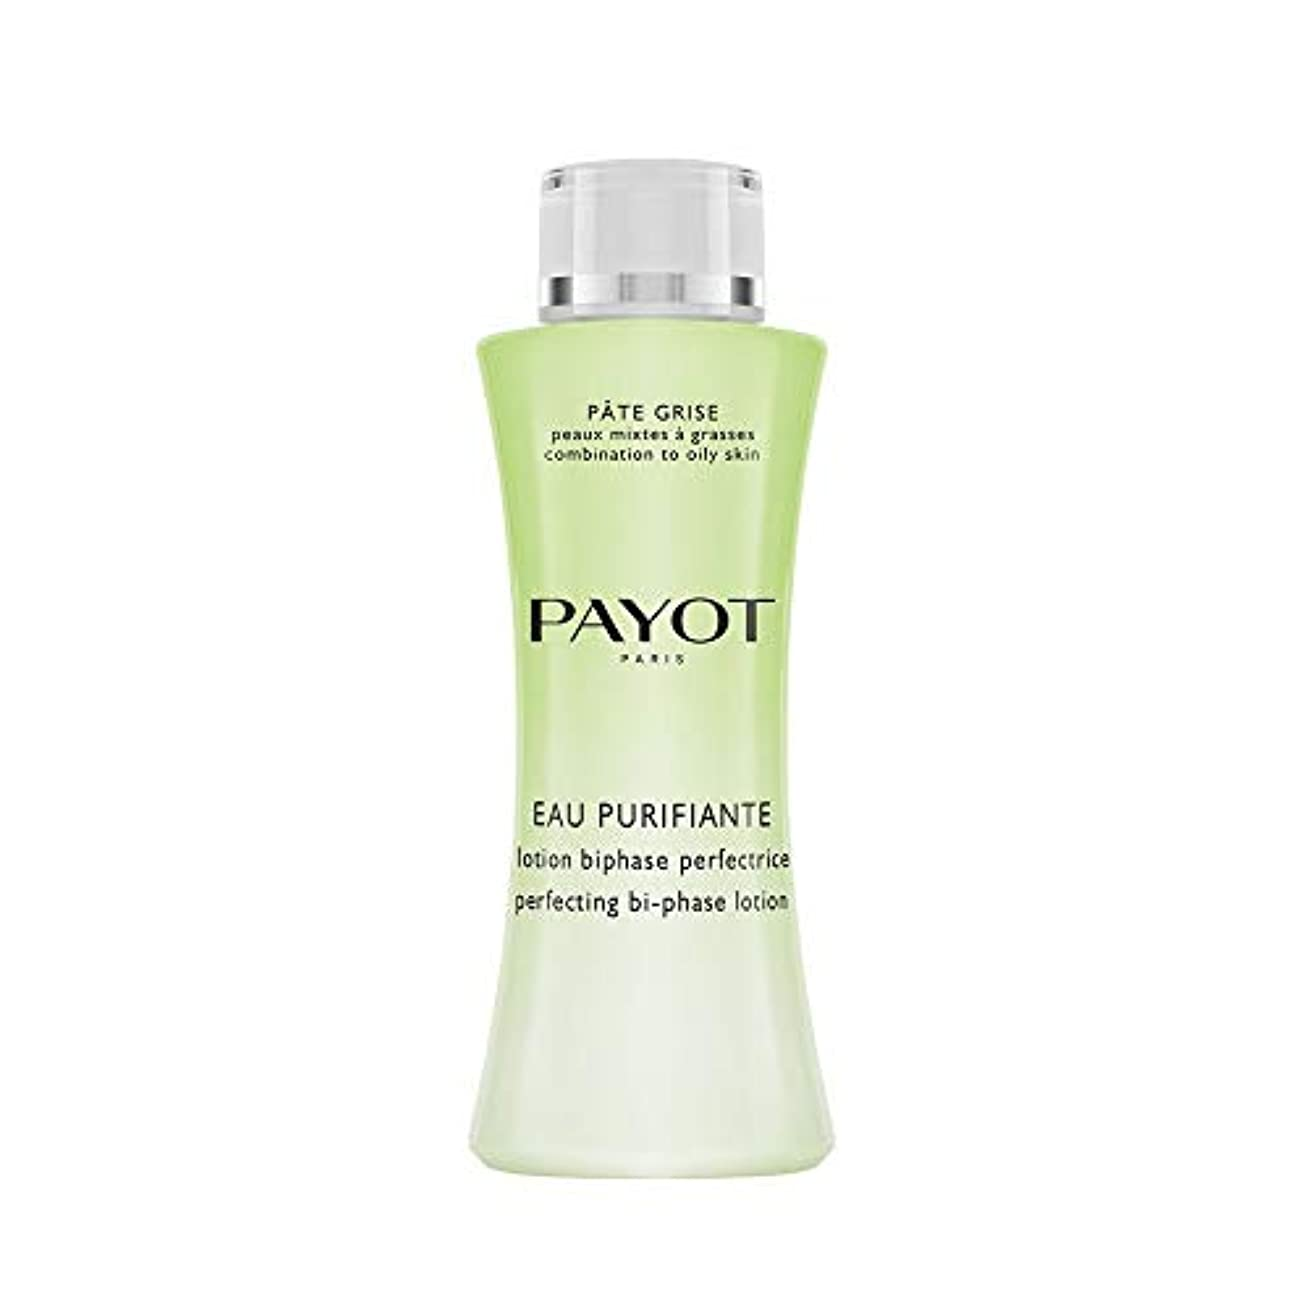 レンズ暗唱する句読点パイヨ Pate Grise Eau Purifiante Perfecting Bi-Phase Lotion (Salon Size) 400ml/13.5oz並行輸入品